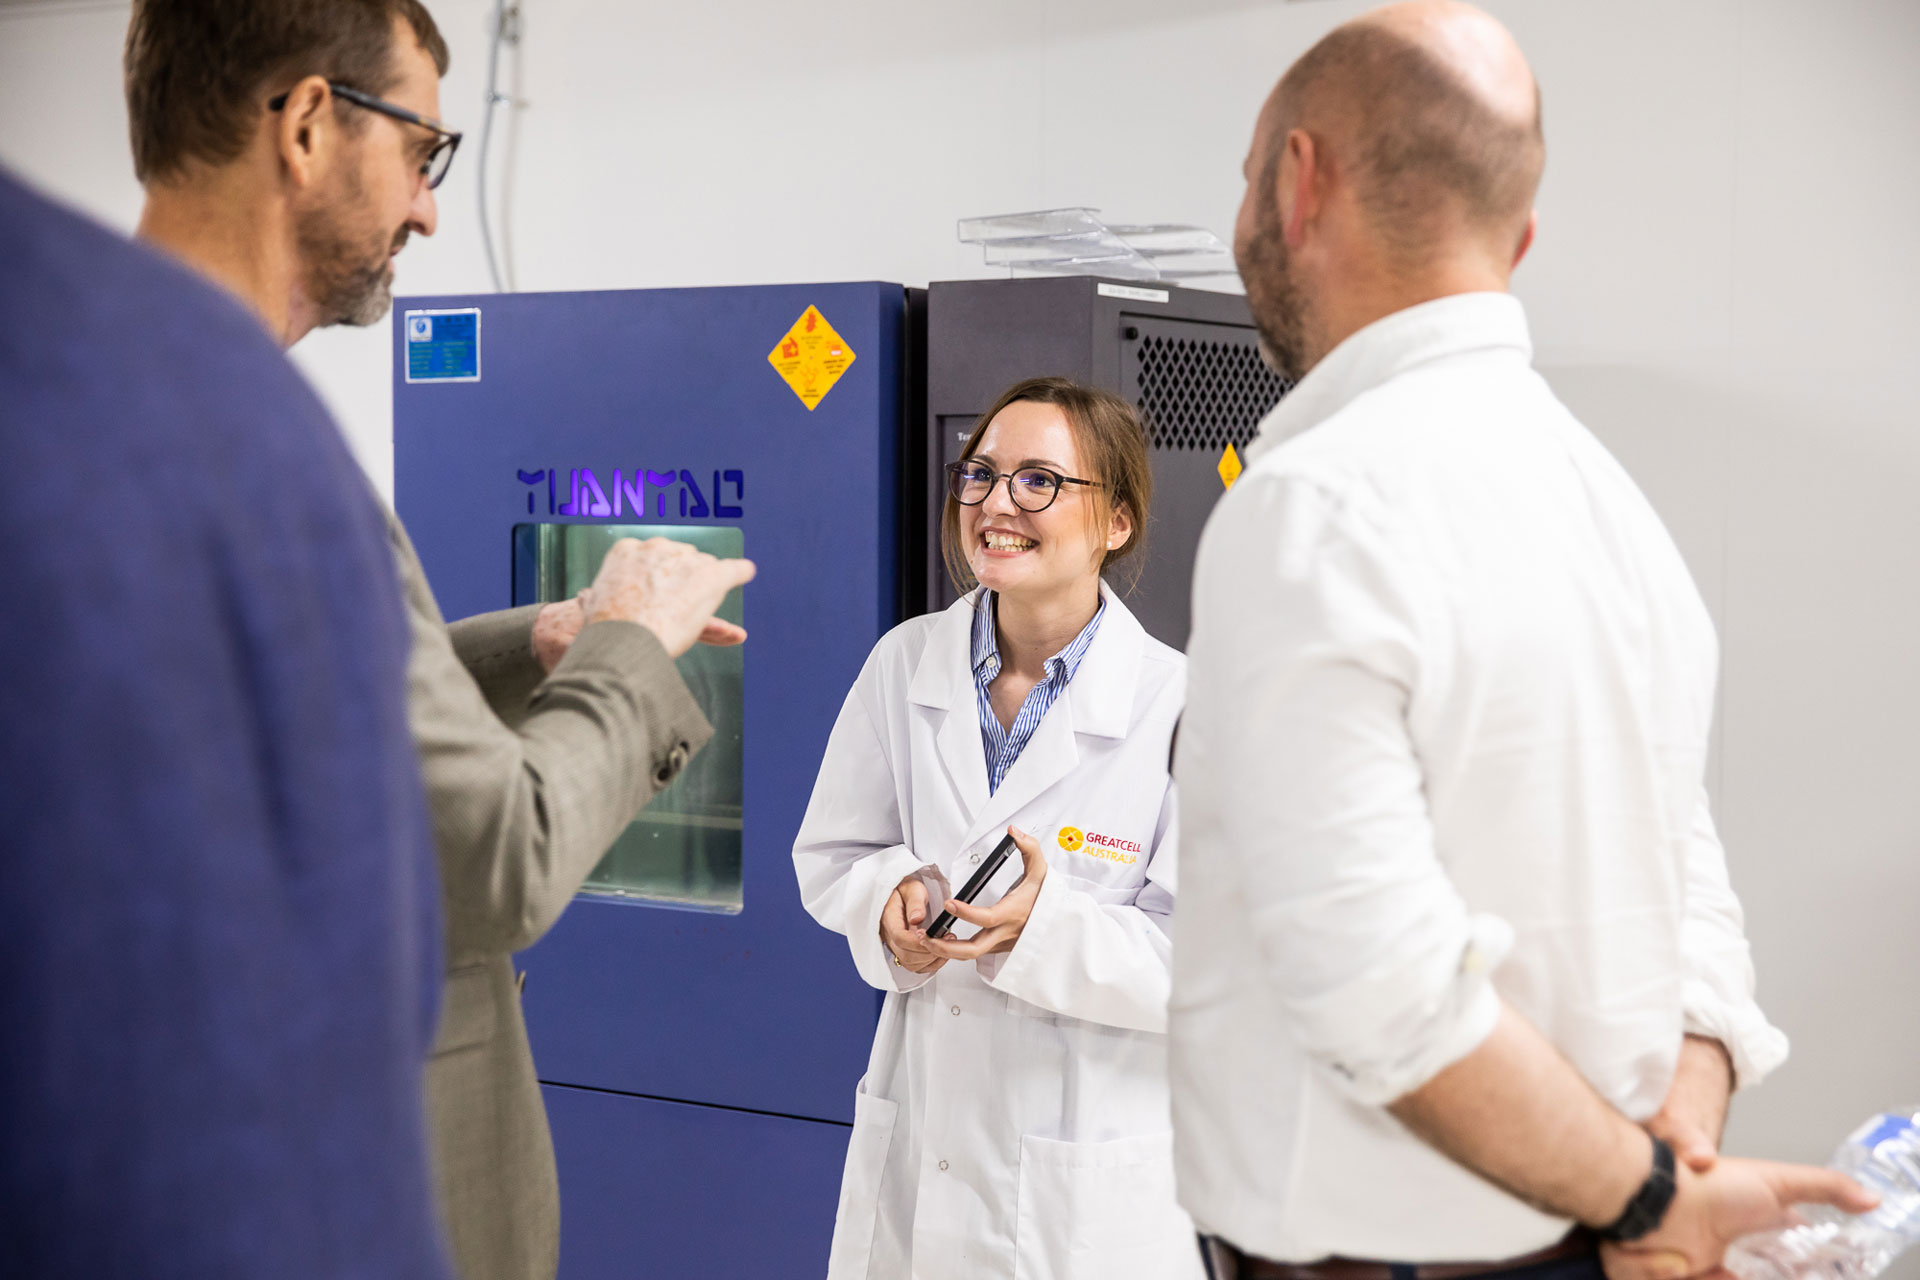 Group talking in front of laboratory equipment